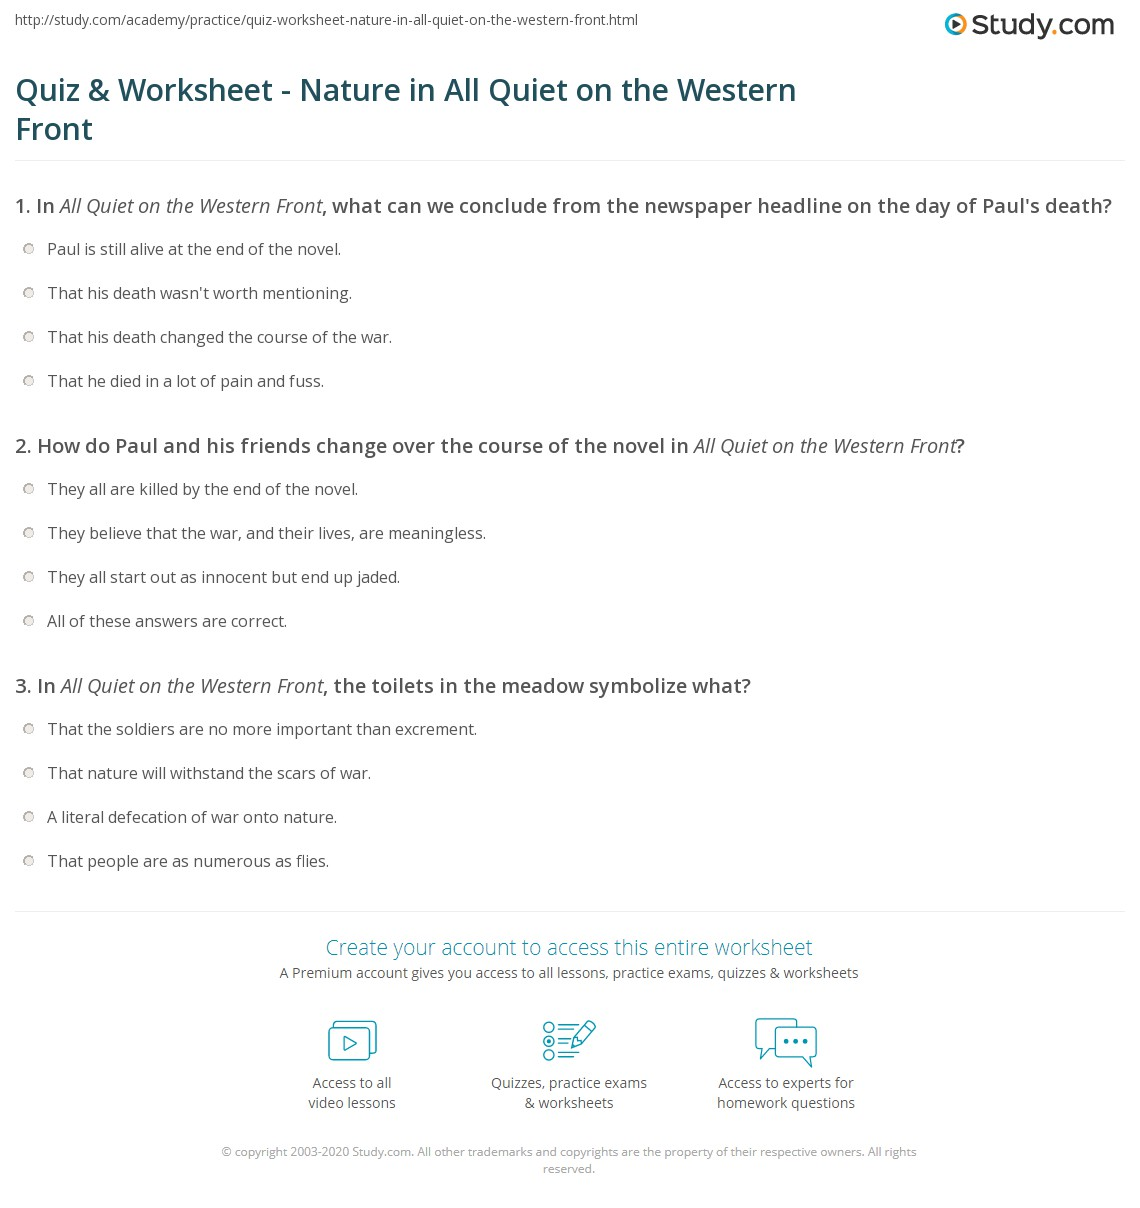 Quiz Worksheet Nature In All Quiet On The Western Front Study